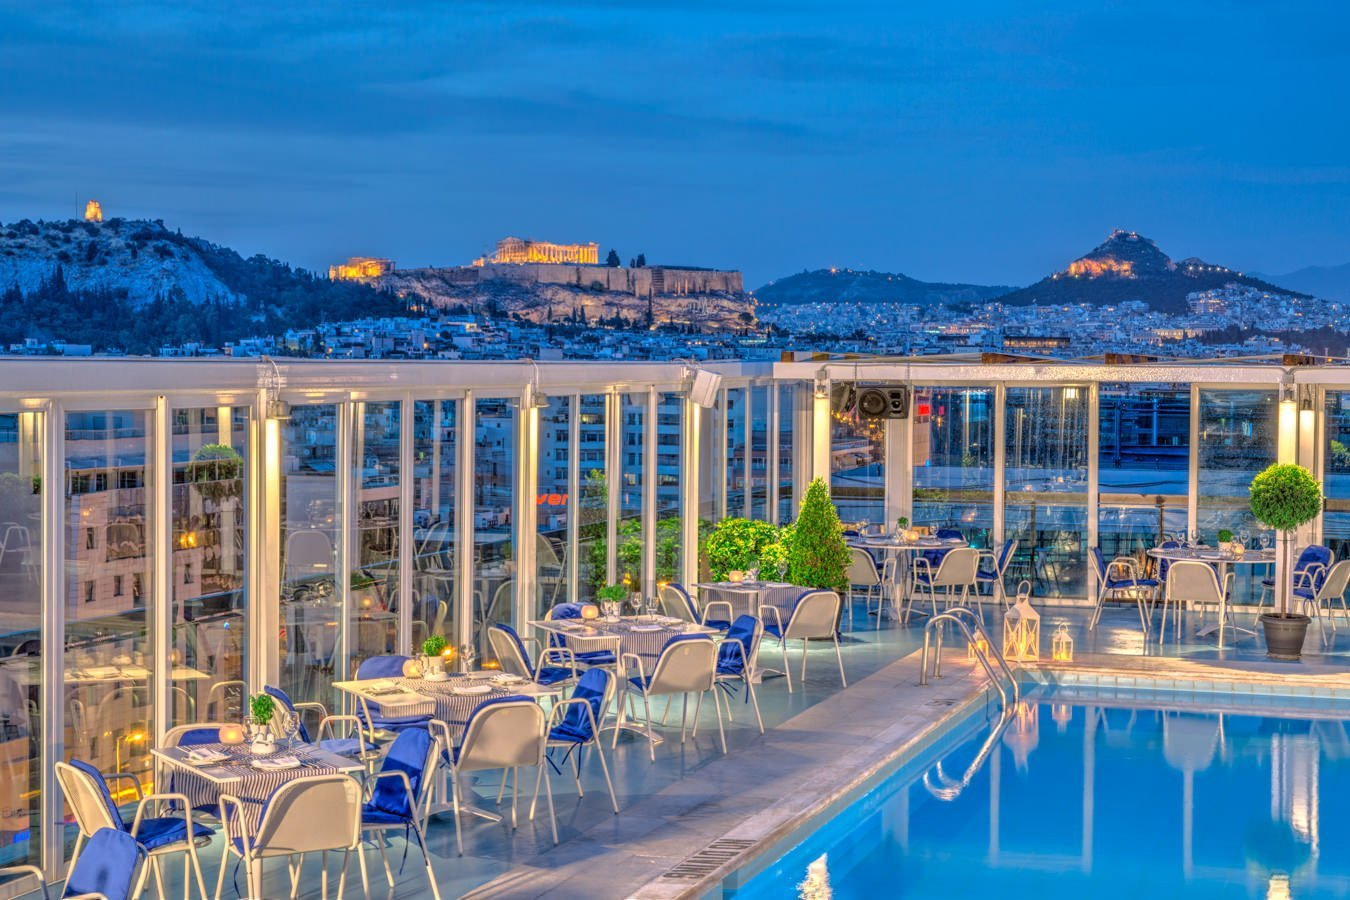 The pool crowning the Athens Ledra Hotel offers swimmers truly memorable views of the Acropolis.